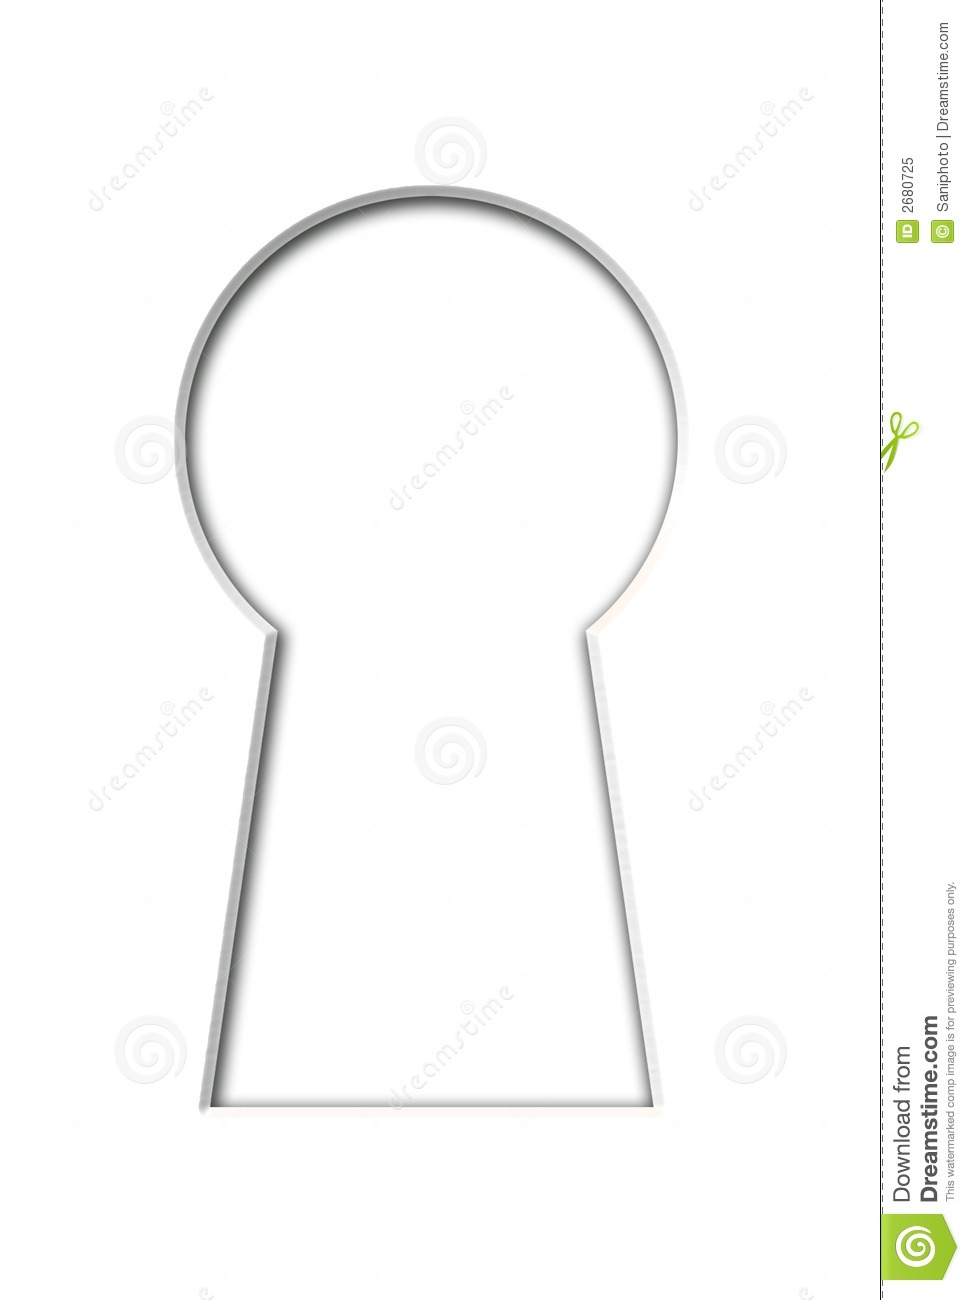 Keyhole stock illustration. Image of keyhole, conceptual ...